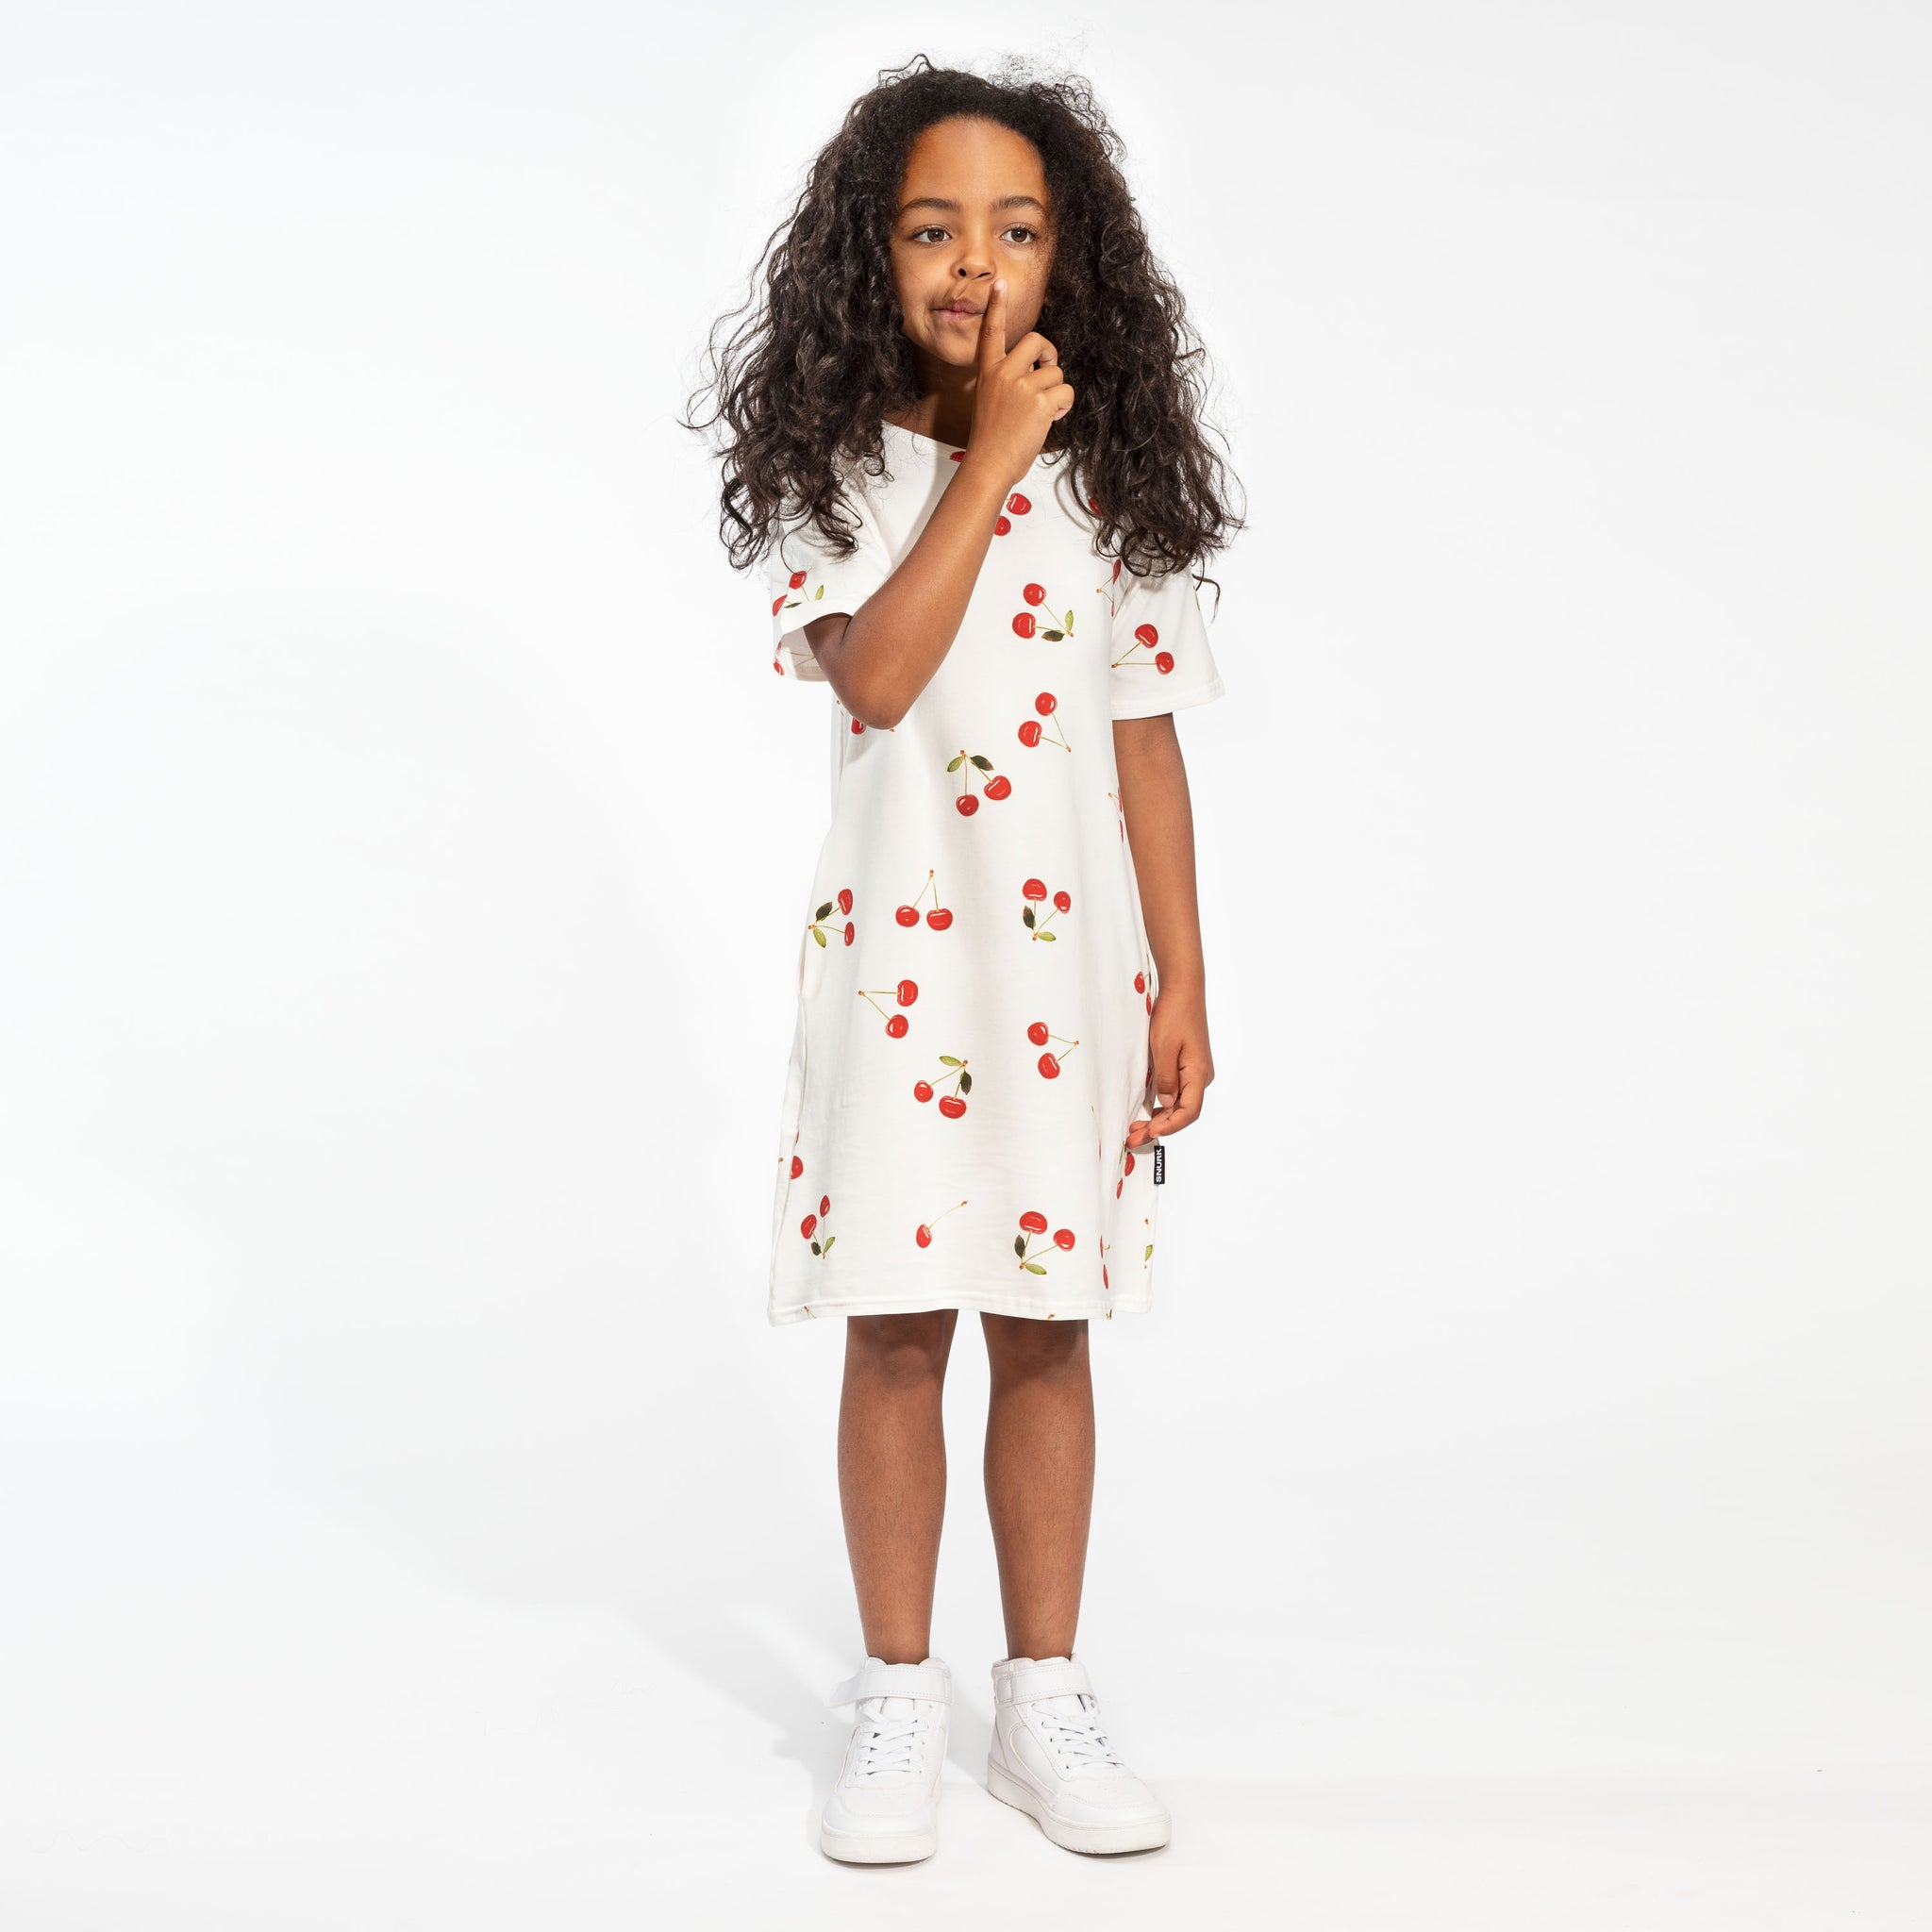 Cherries T-shirt dress